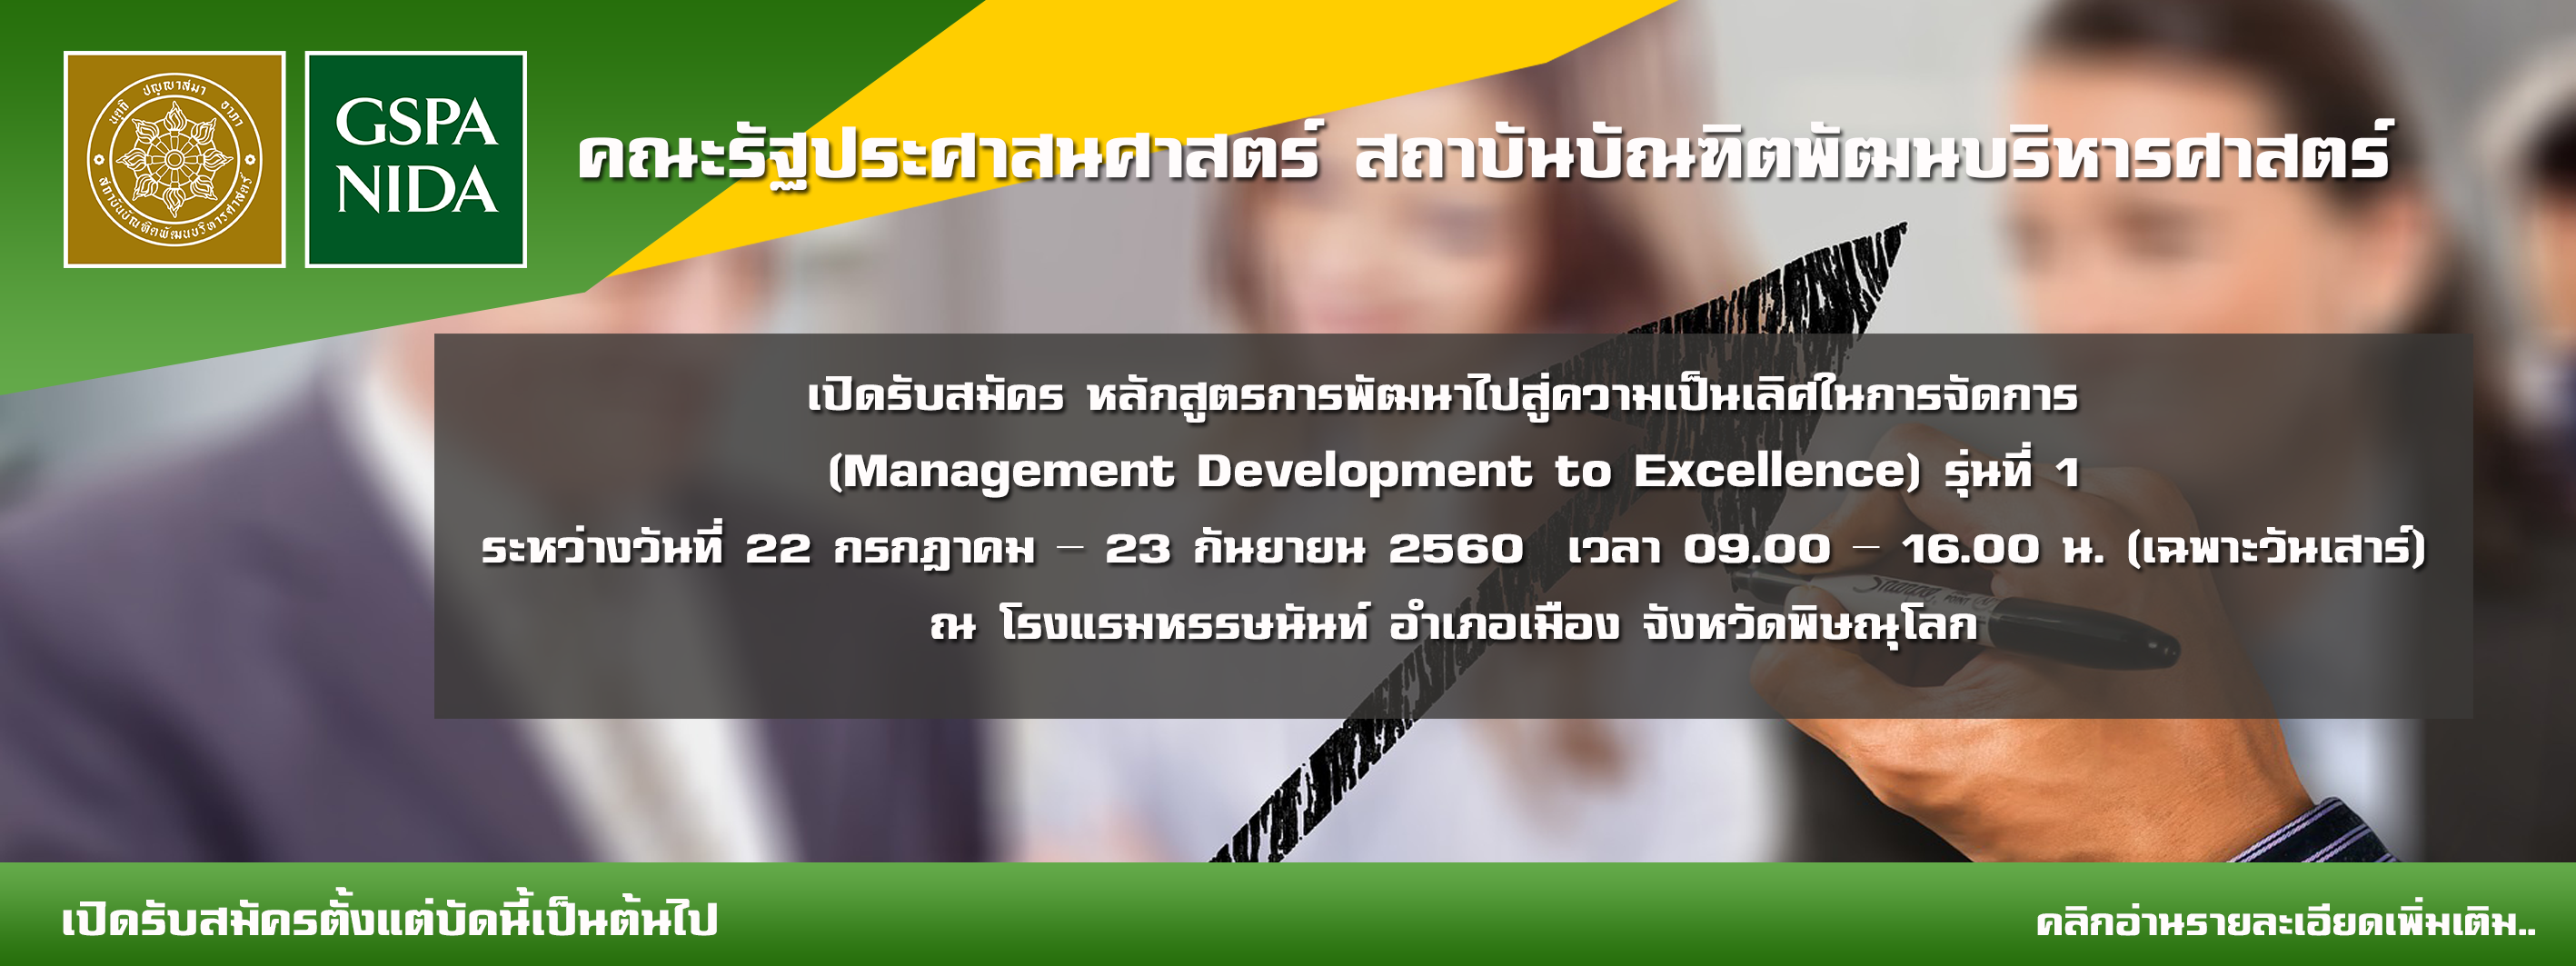 management evelopment to excellence 24 05 60